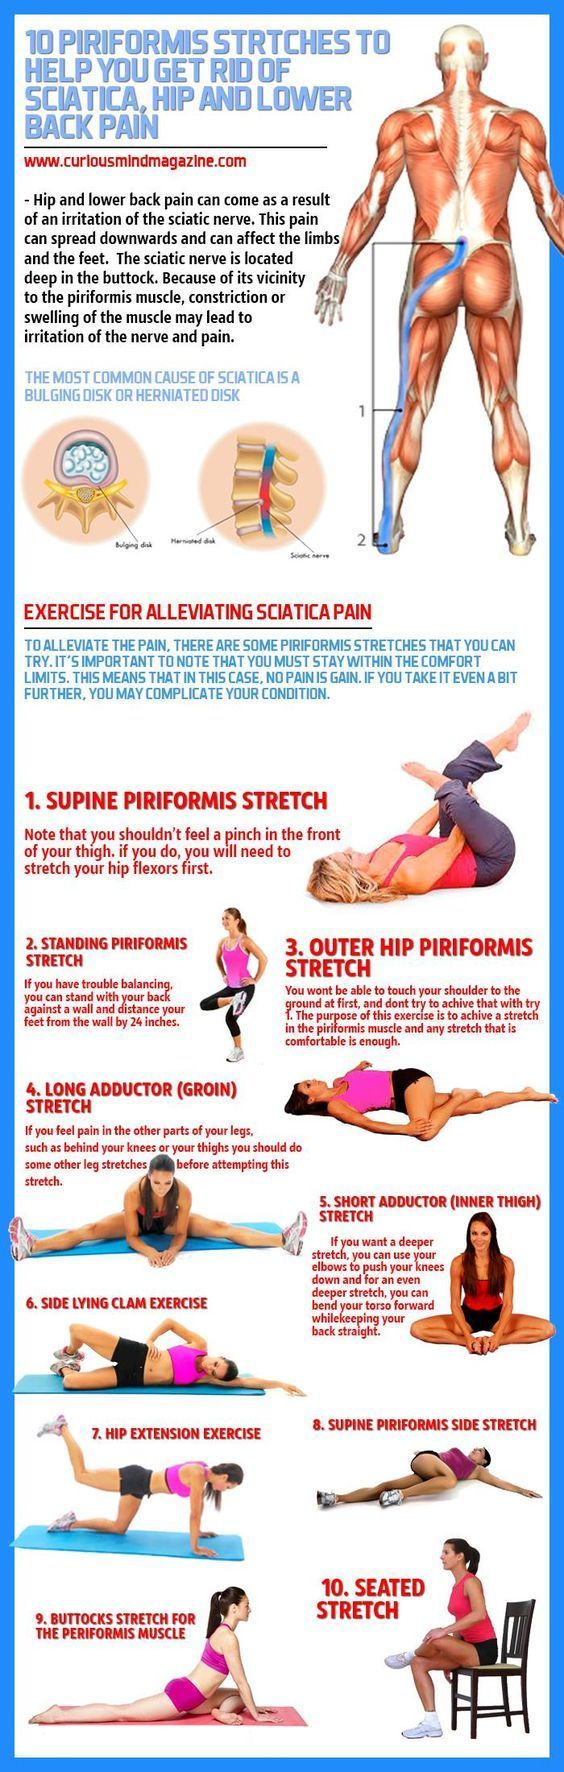 The sciatic nerve is located deep in the buttock. Because of its vicinity to the piriformis muscle, constriction or swelling of the muscle may lead to irritation of the nerve and pain. For More Health And Fitness Tips Visit Our Website